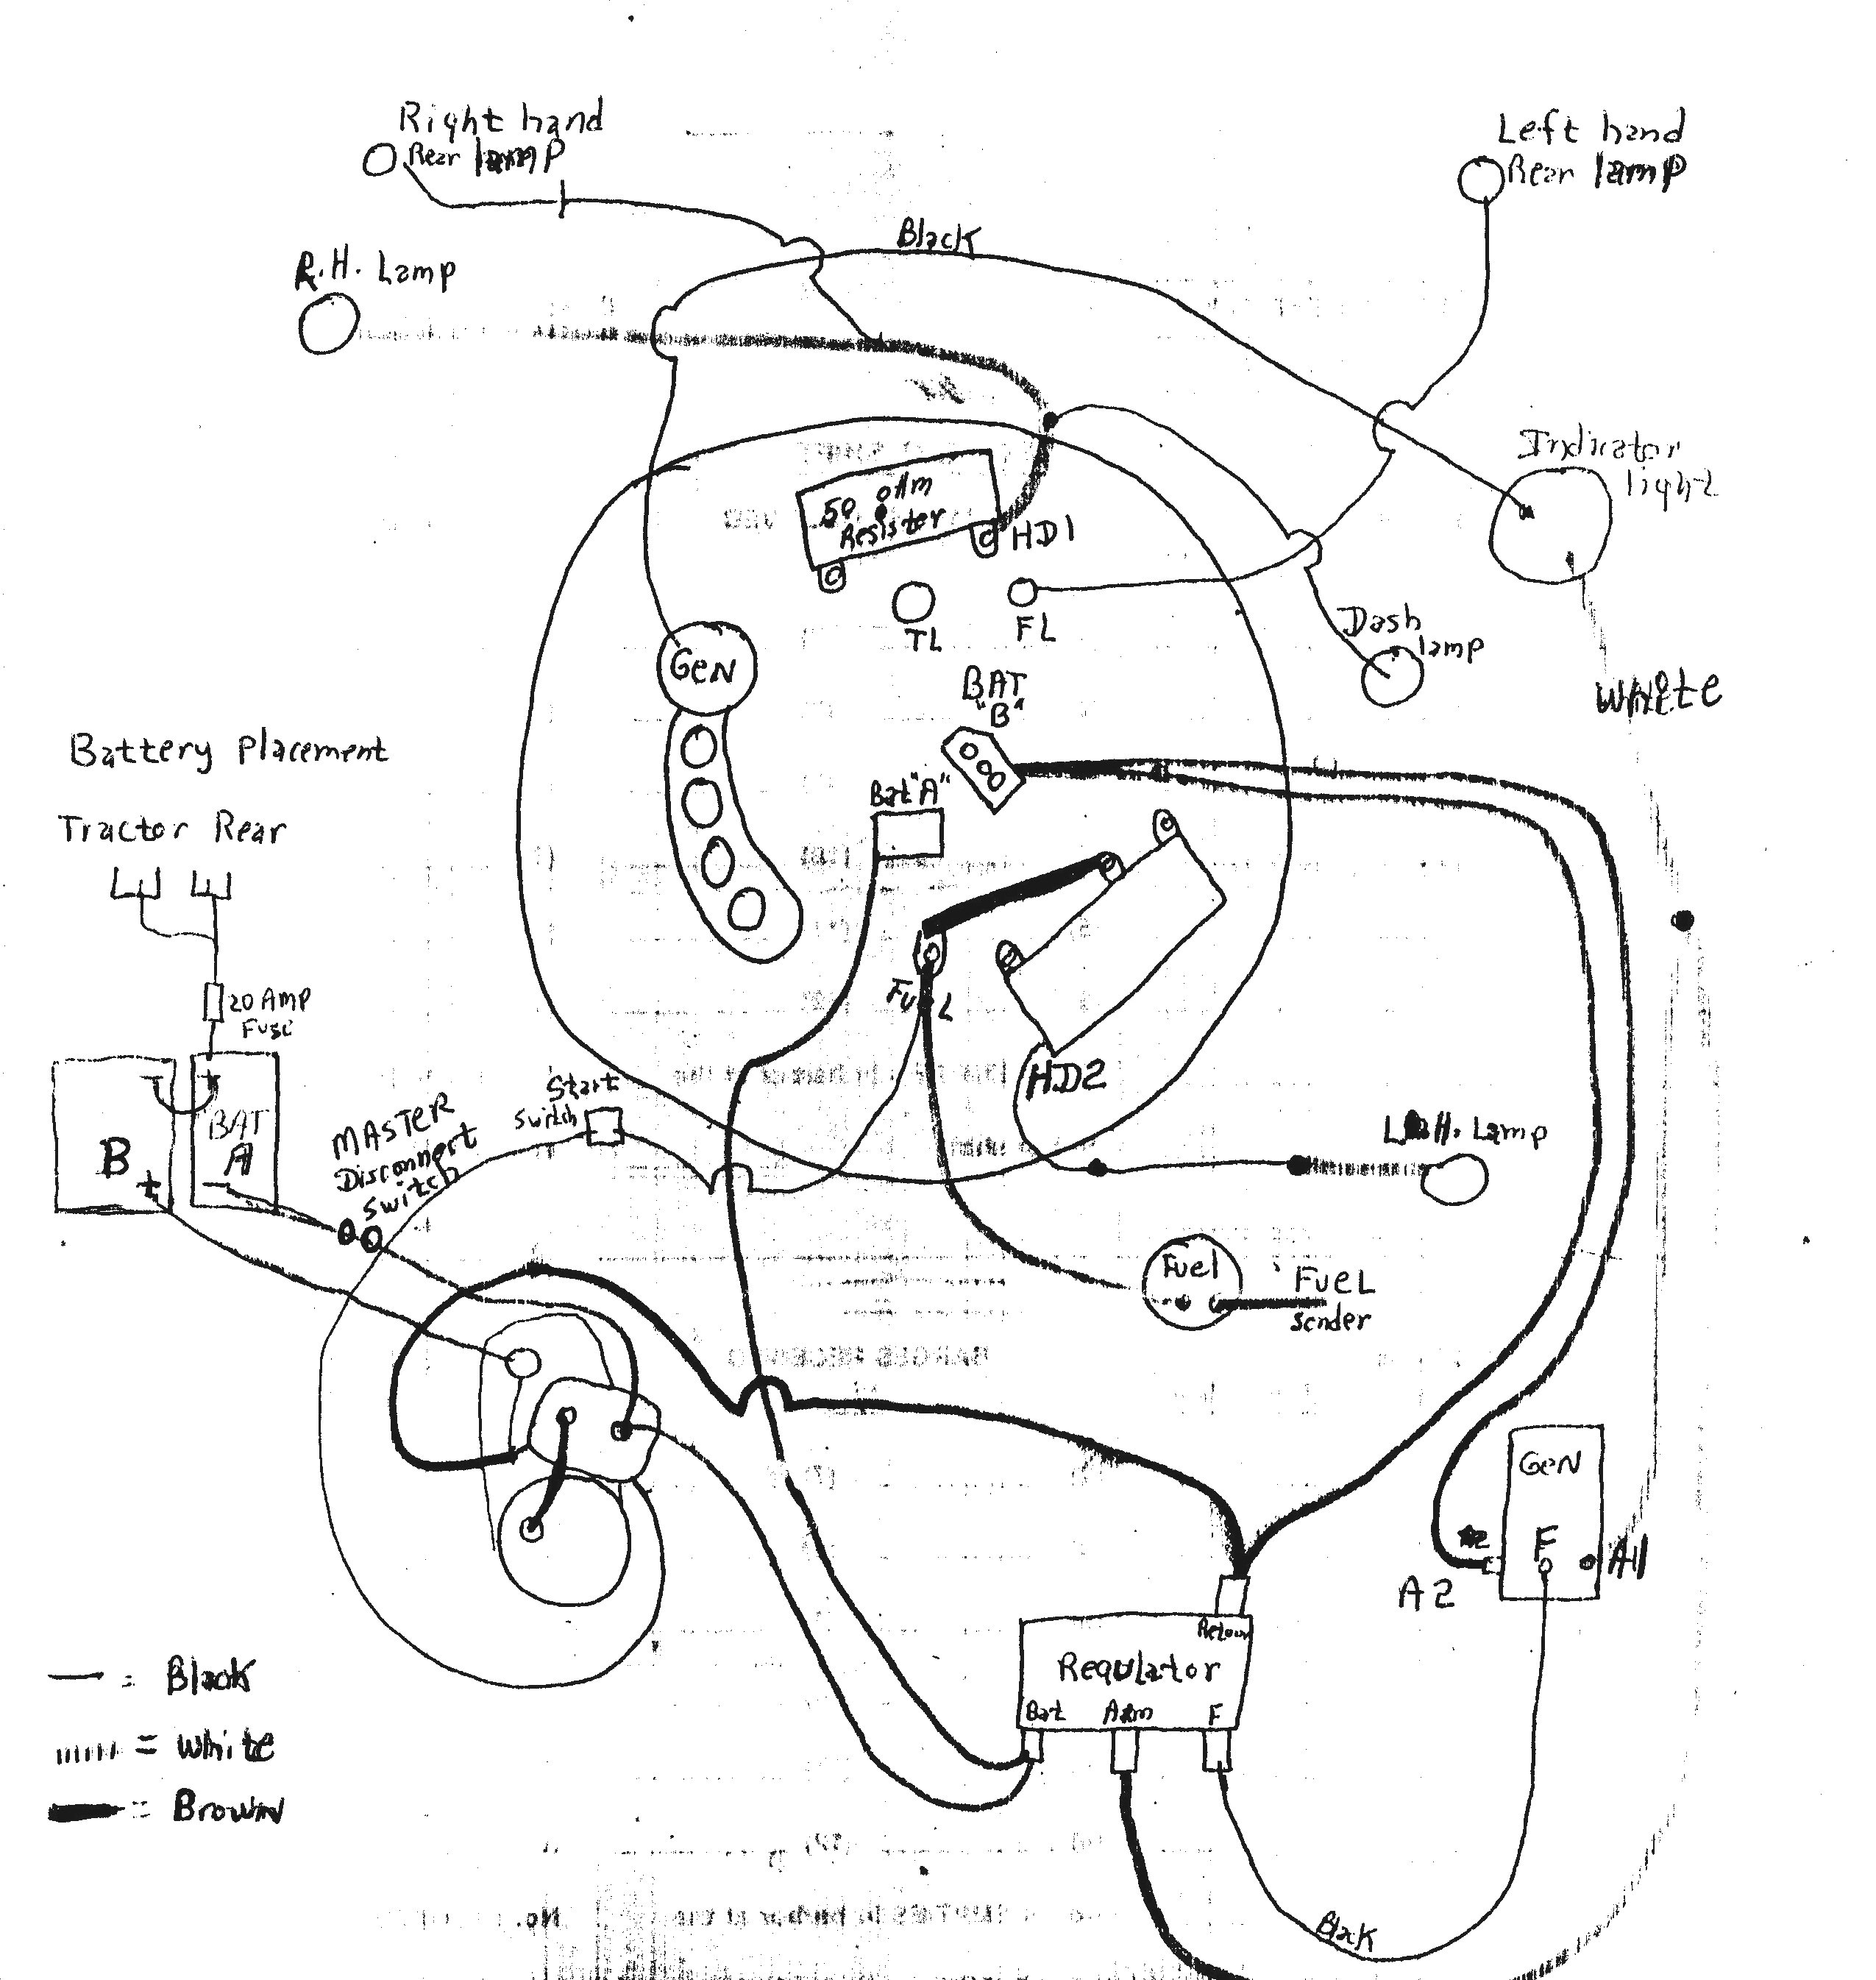 WRG-1056] John Deere Alternator Wiring Diagram Free Download on